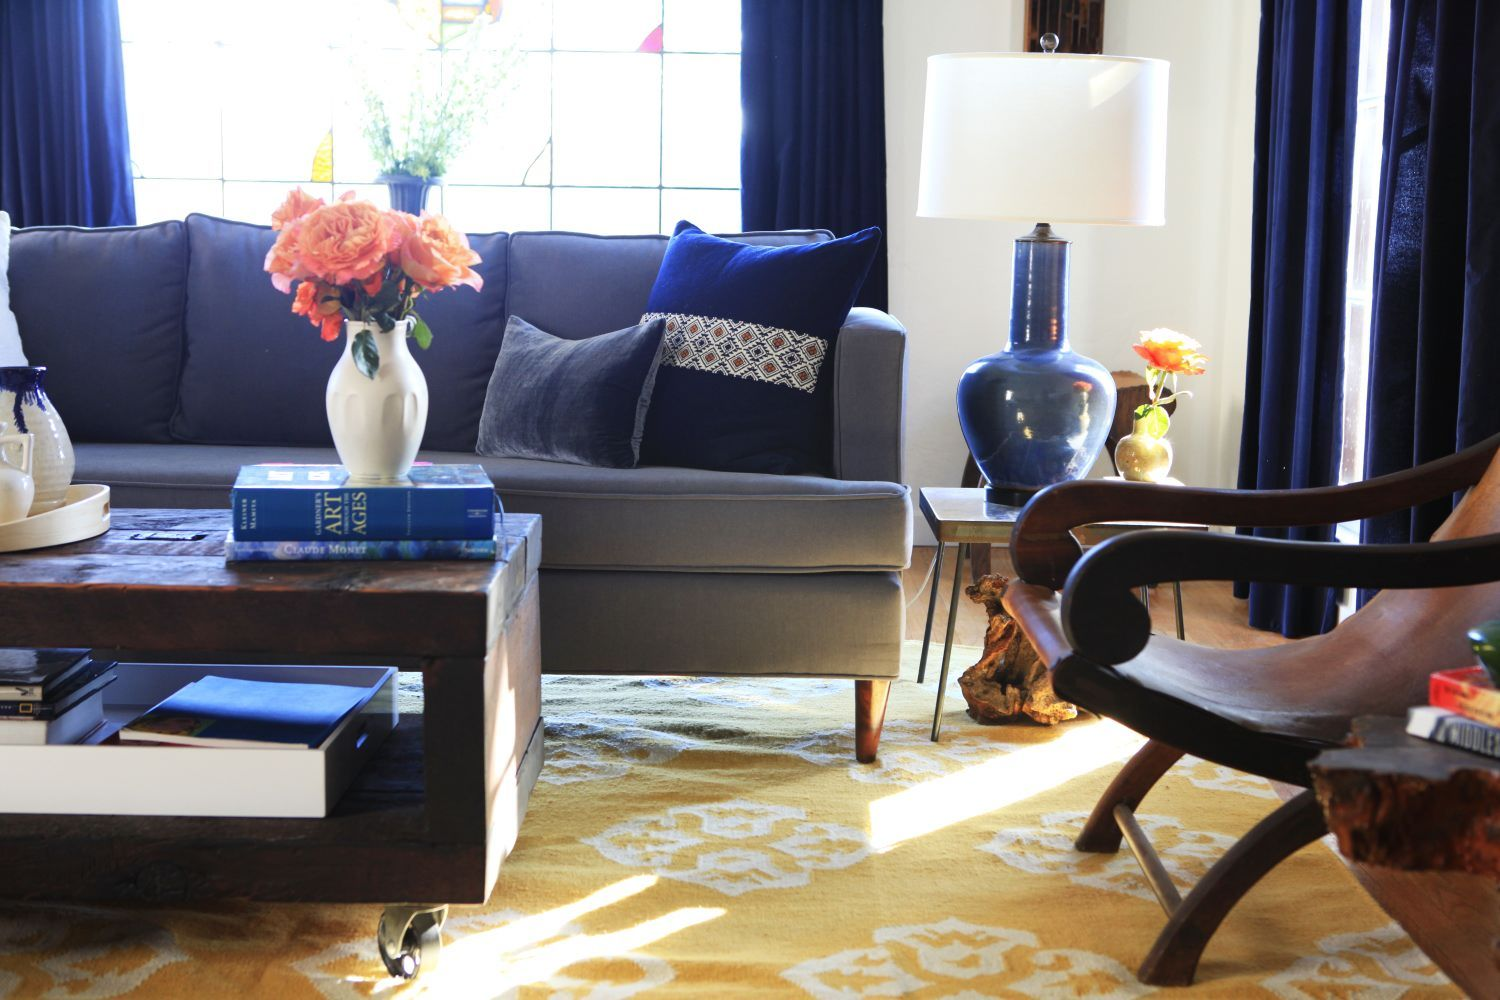 Andalusian Rug From West Elm Via Emily Schoenfeld Henderson